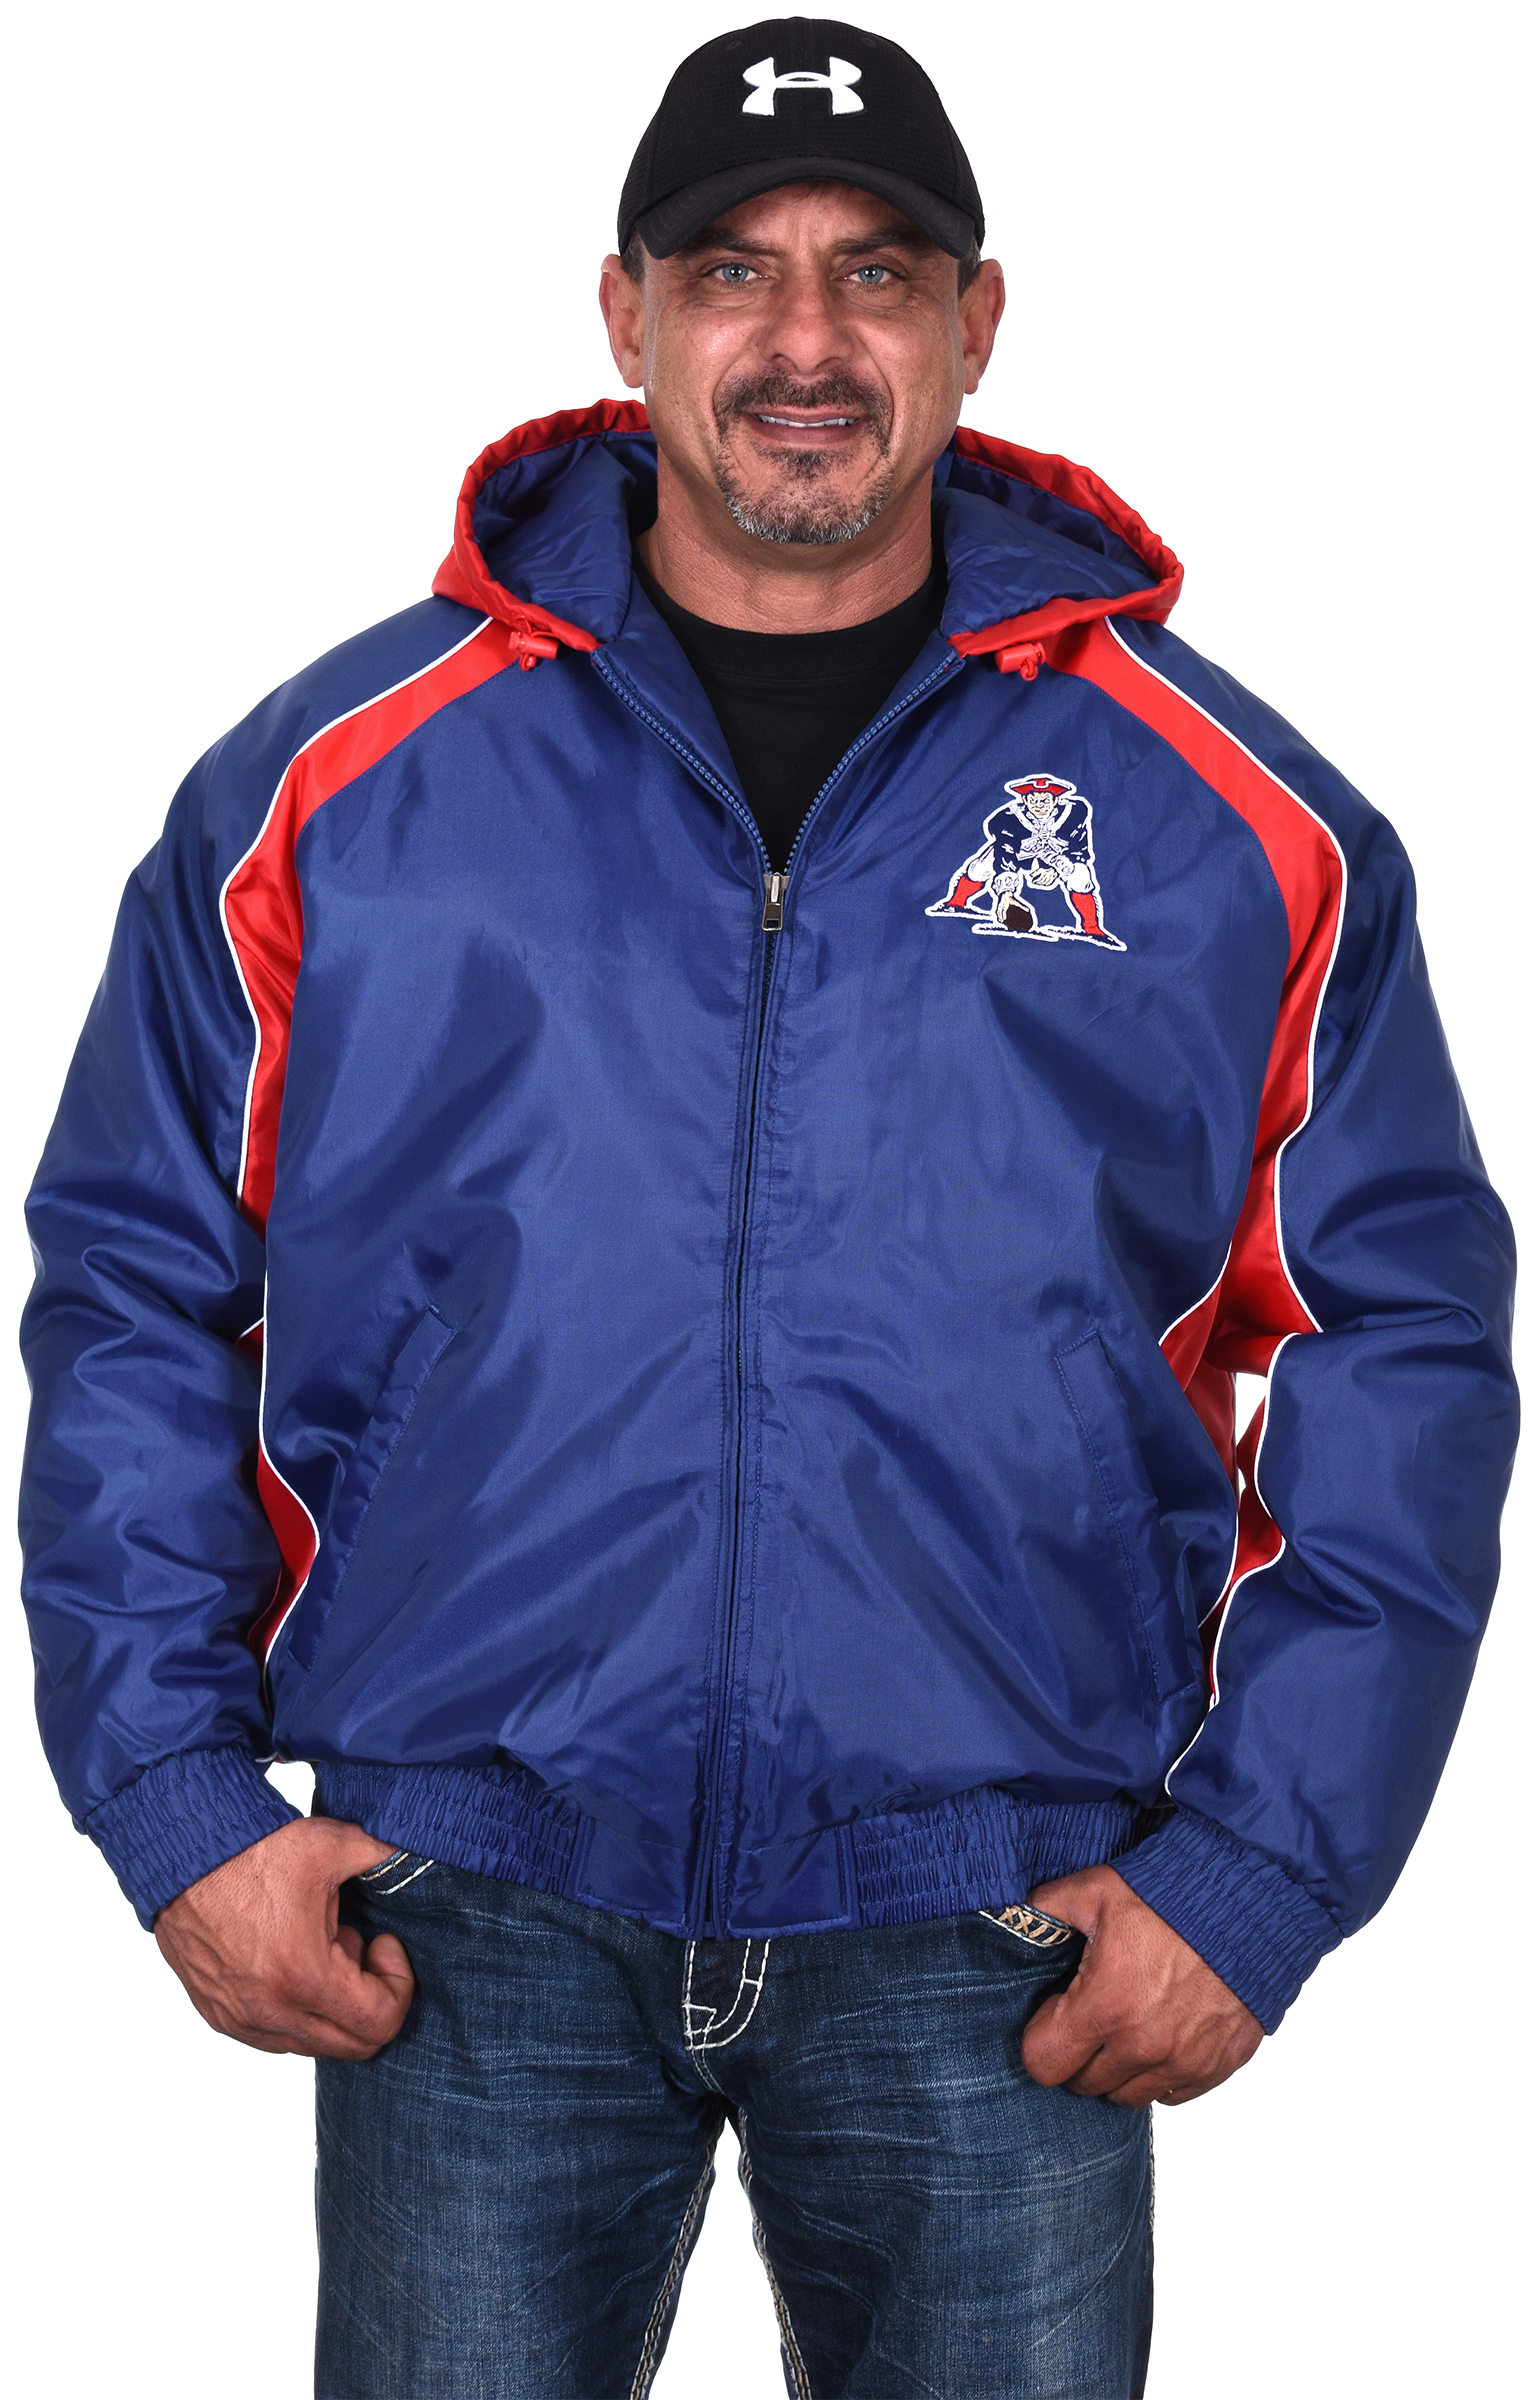 New England Patriots Throwback Zipper Jacket By G-III by